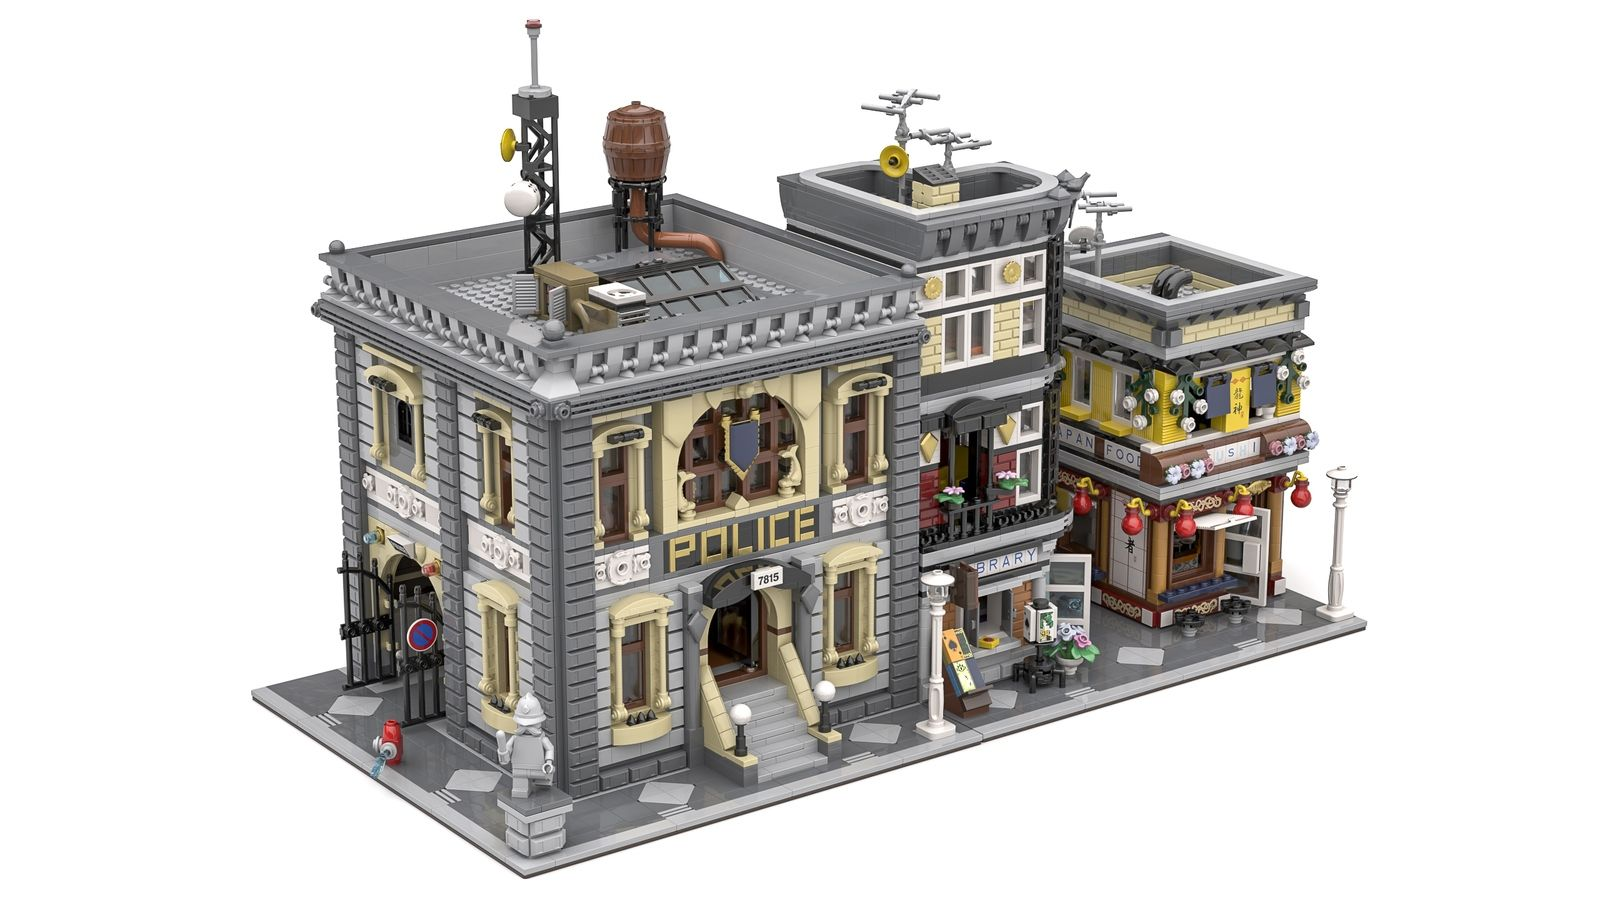 The Old Police Station Lego Lego House Lego Trains Lego